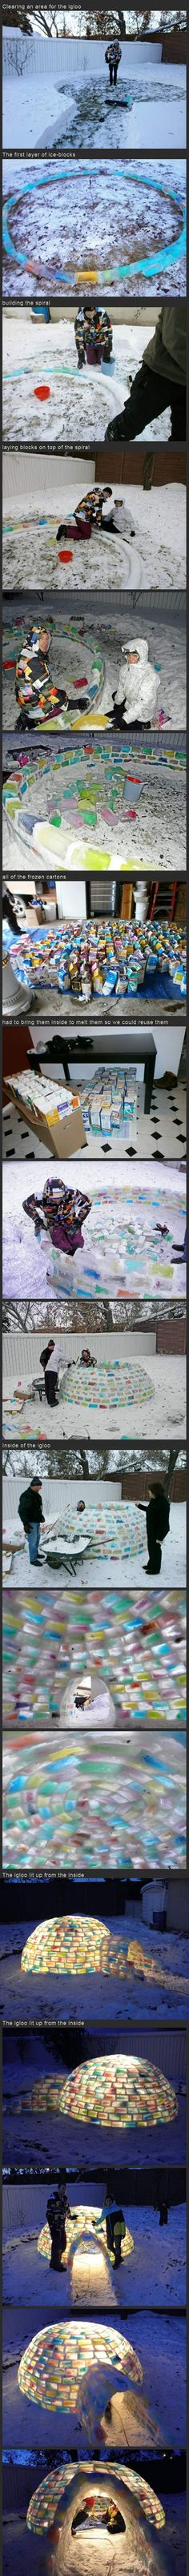 The world's most awesome igloo.